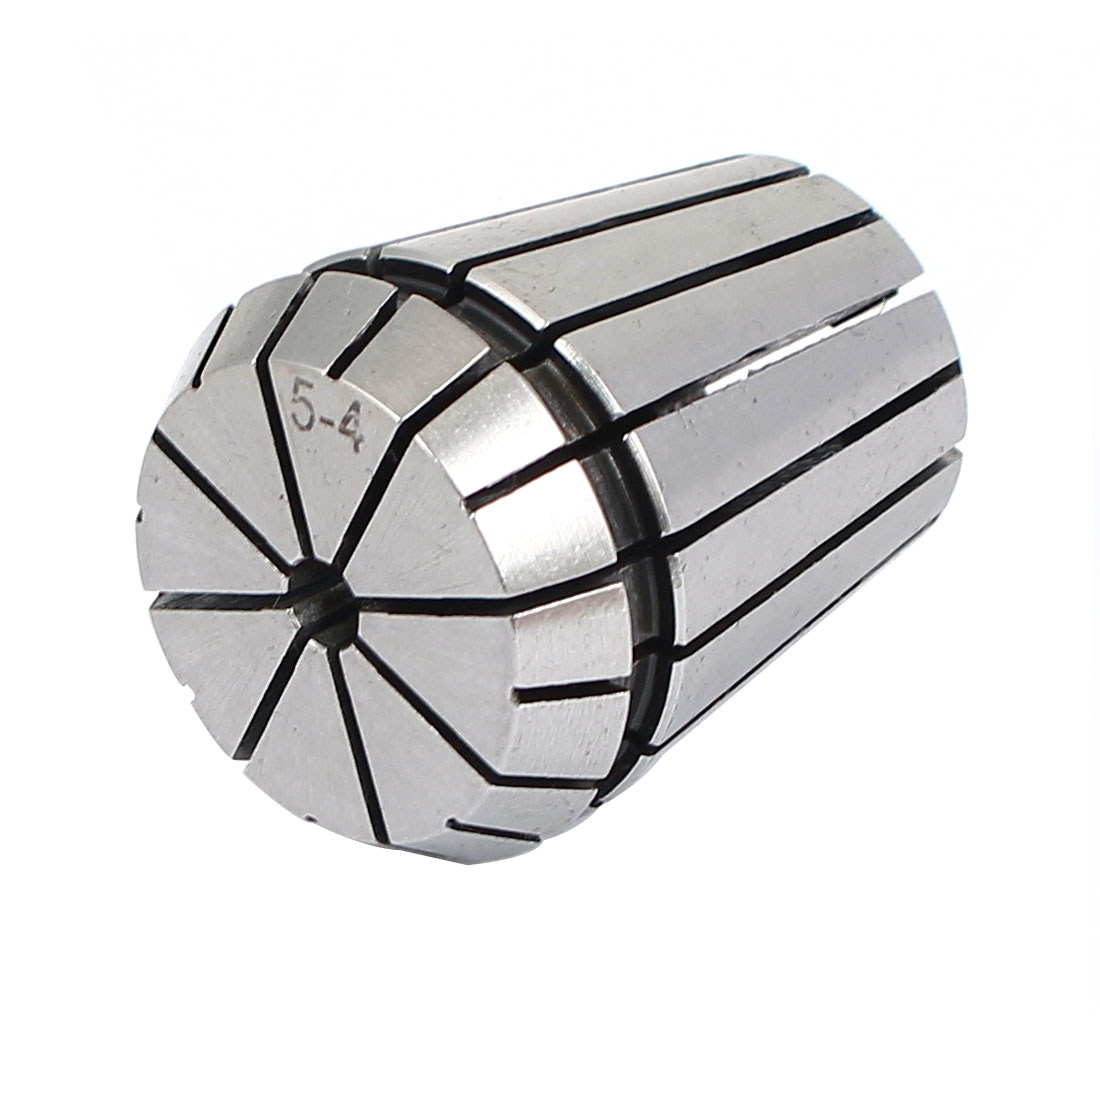 ER32 5mm Clamping Dia CNC Engraving Milling Machine Spring Collet